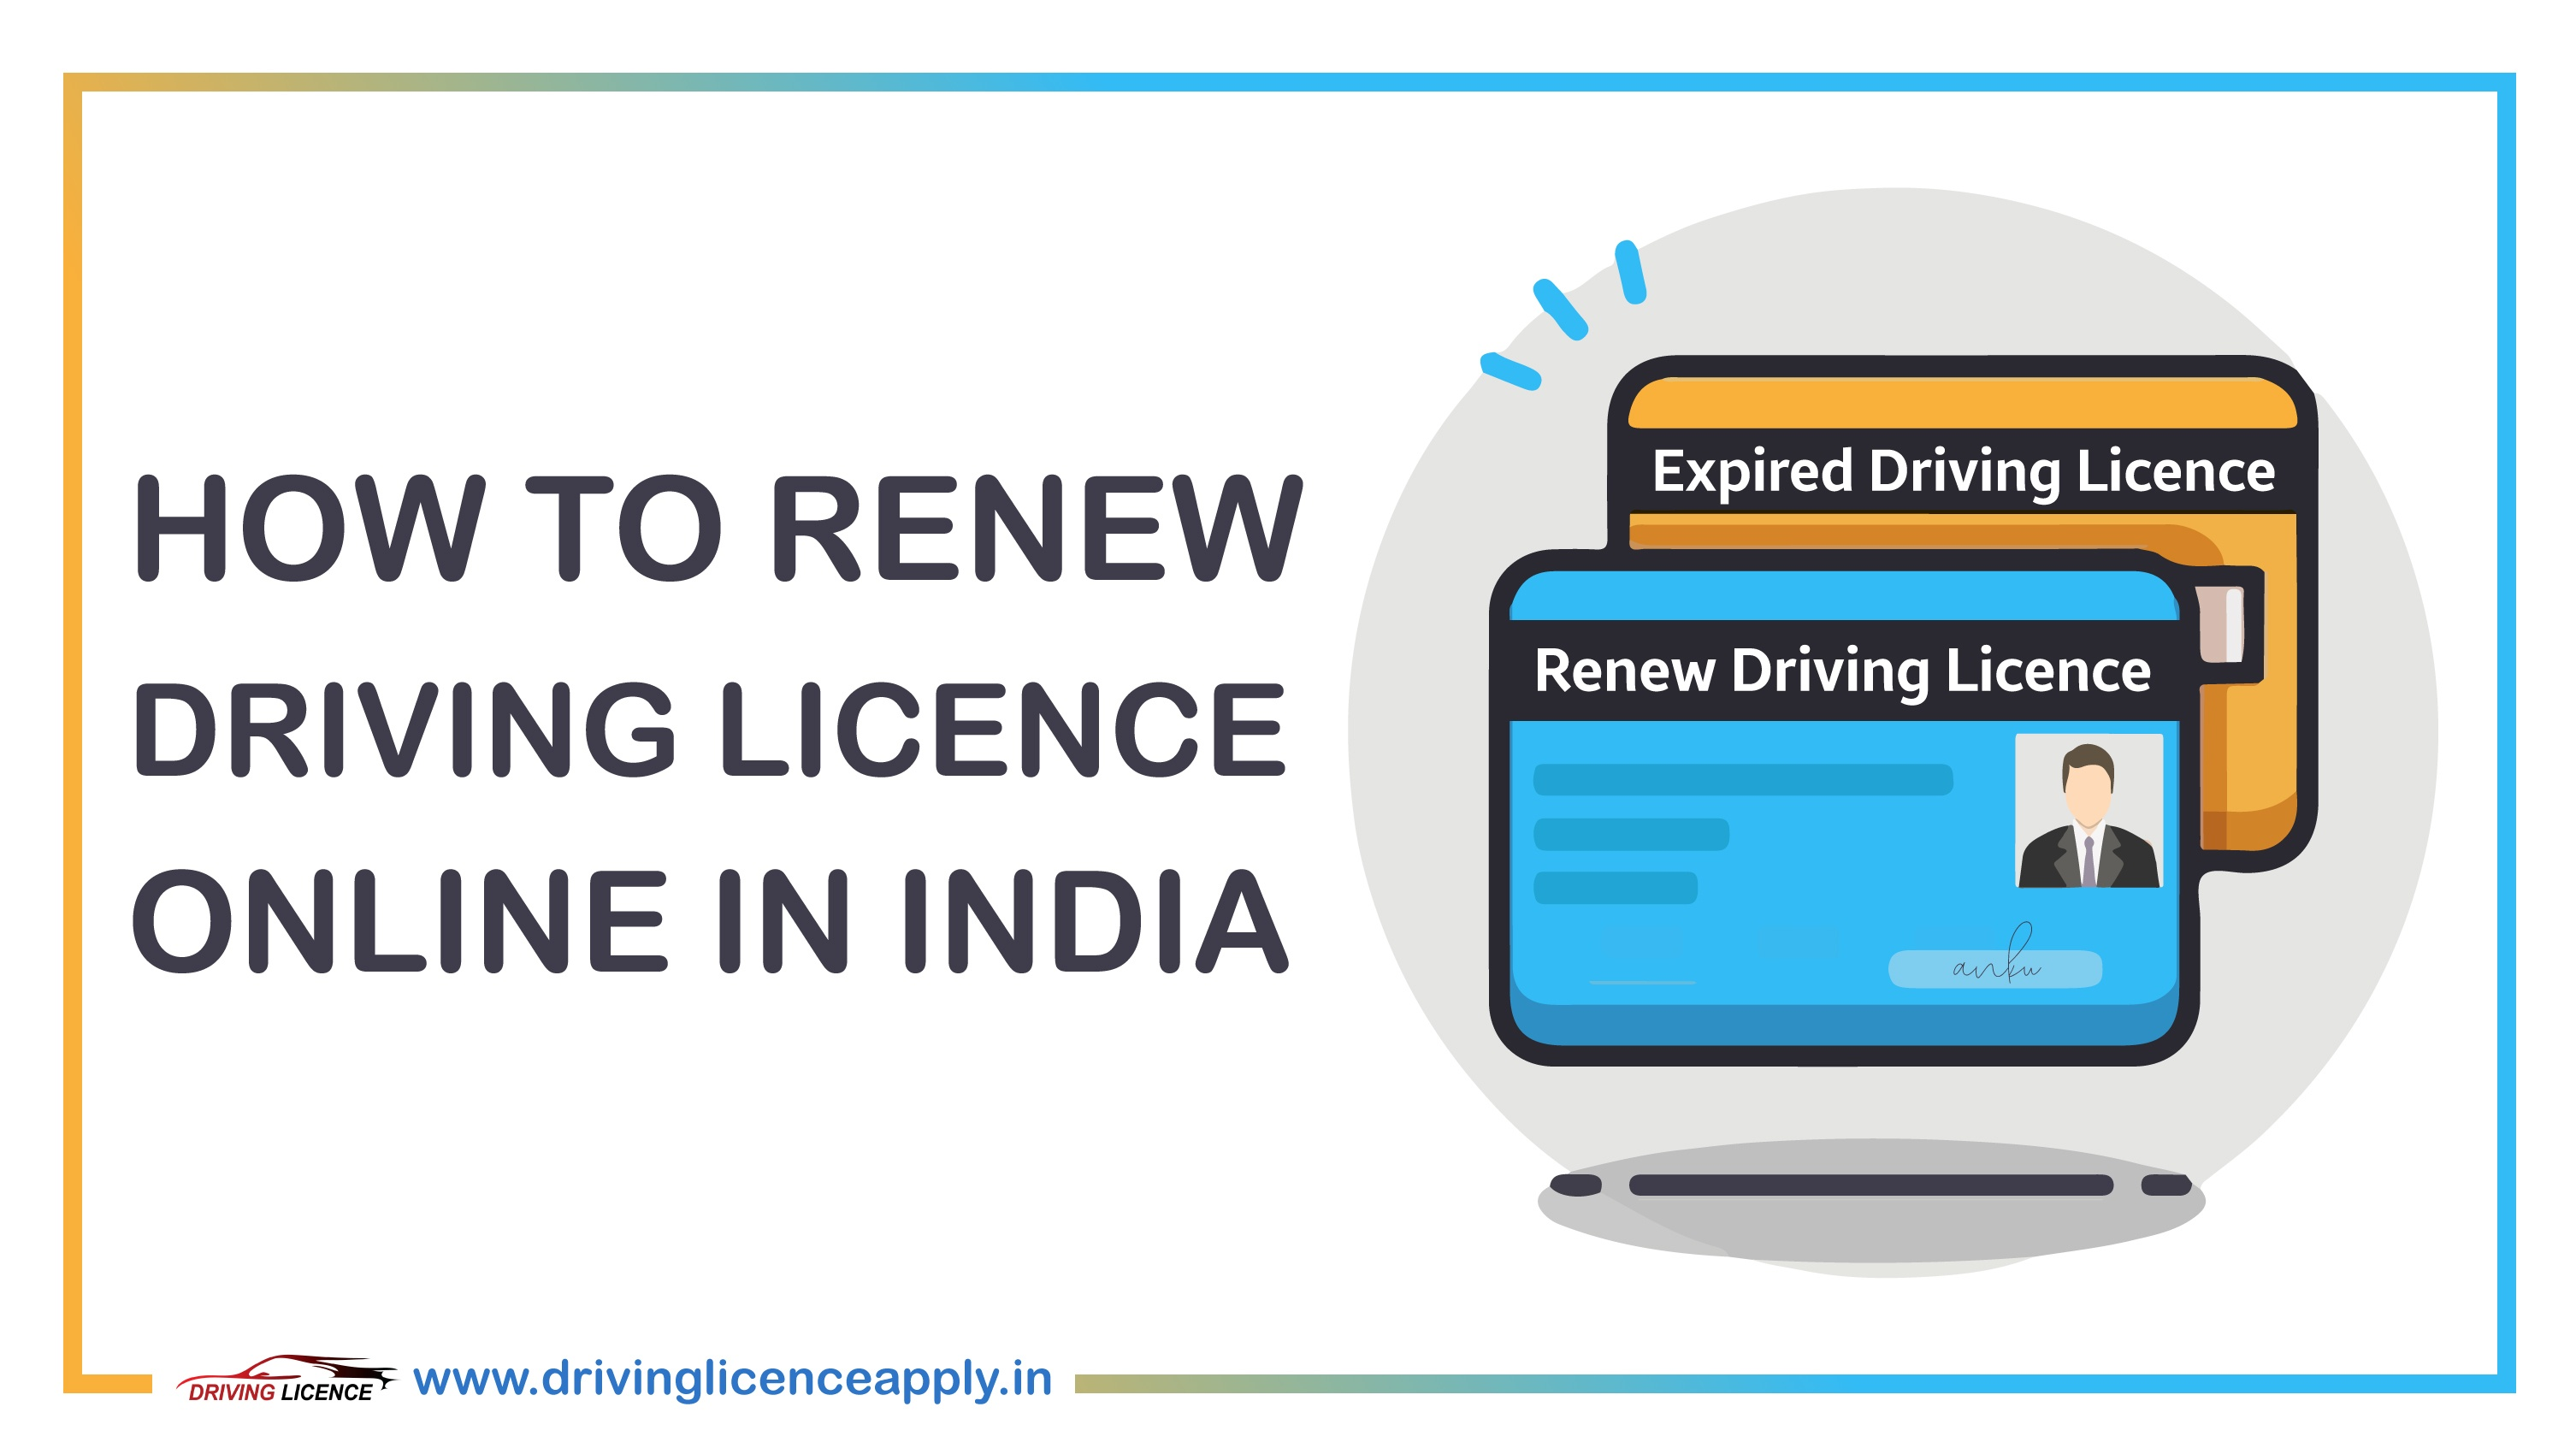 How to Renew Driving Licence Online In India?